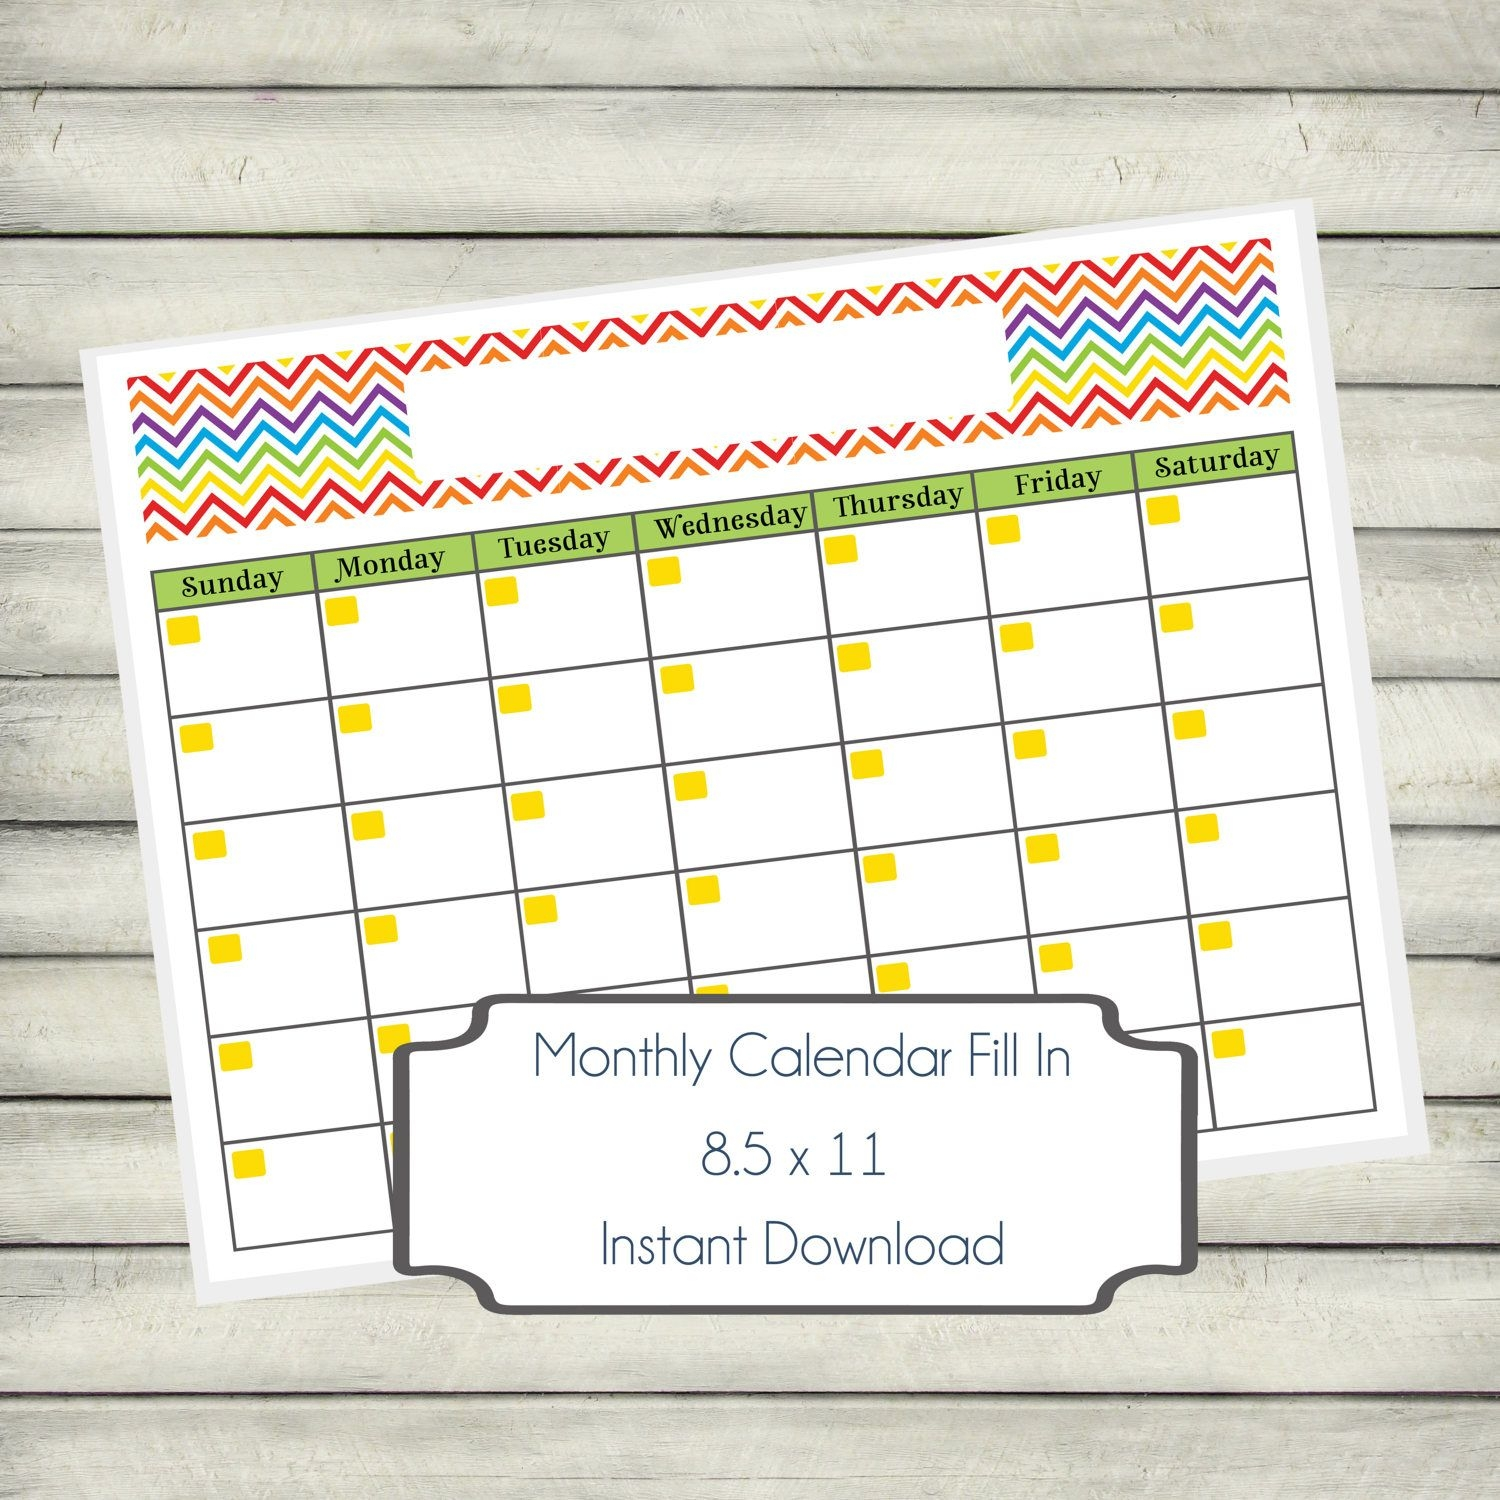 Calendar Monthly Printable - Artist Rainbow Chevron, Fill In Instant  Download Digital Calendar Fill In Template, Home Organization